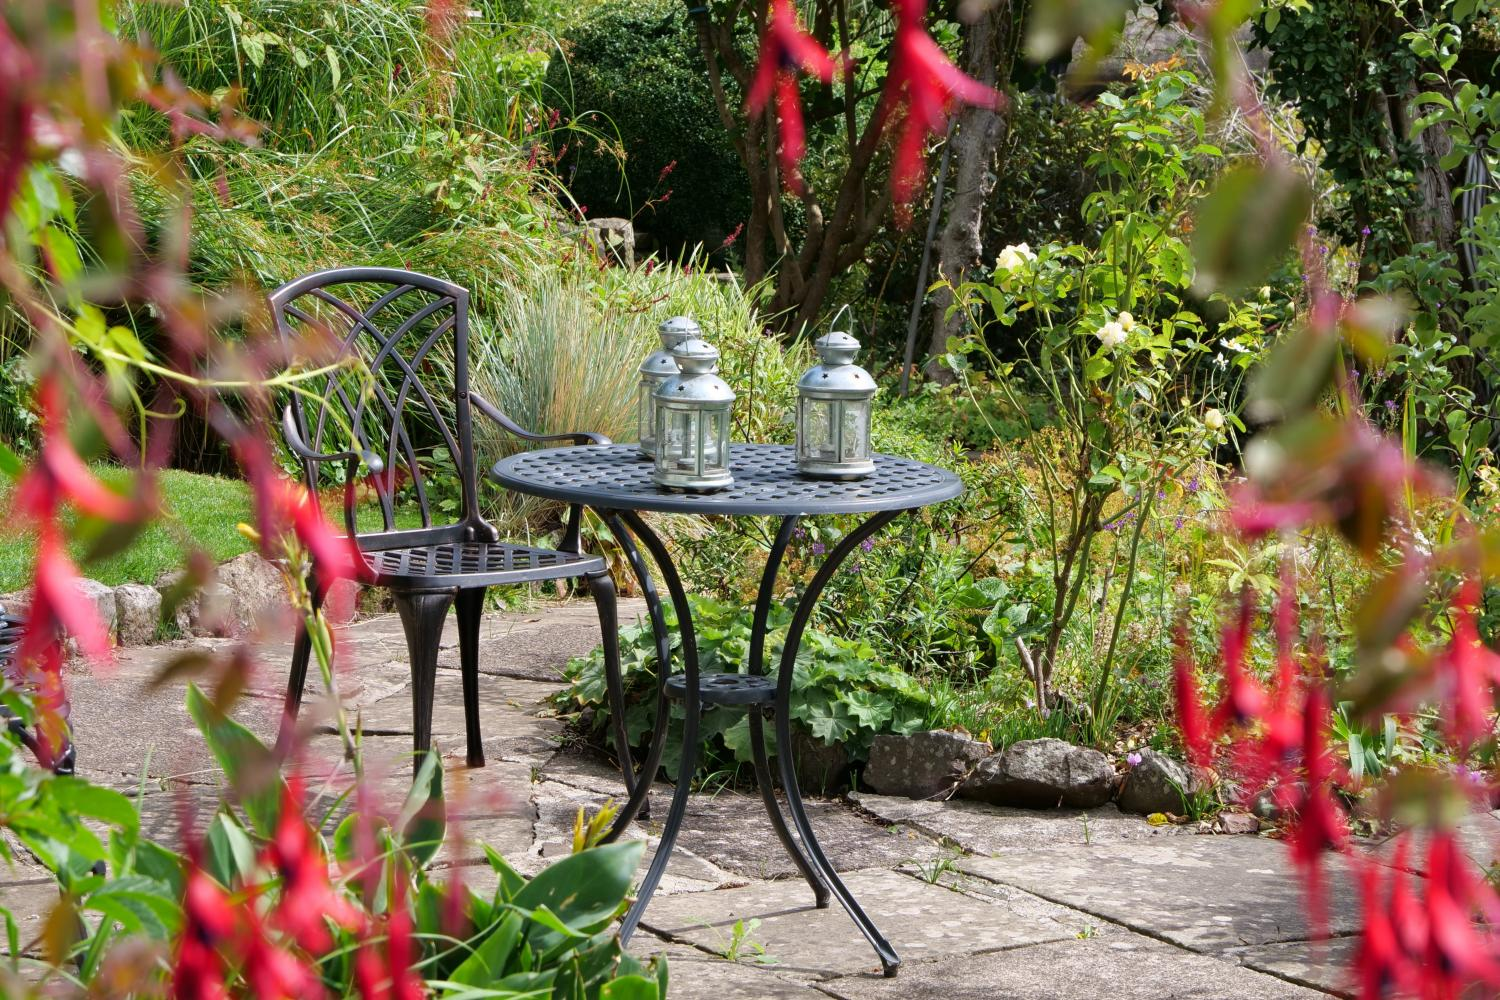 Take a seat in the garden and relax